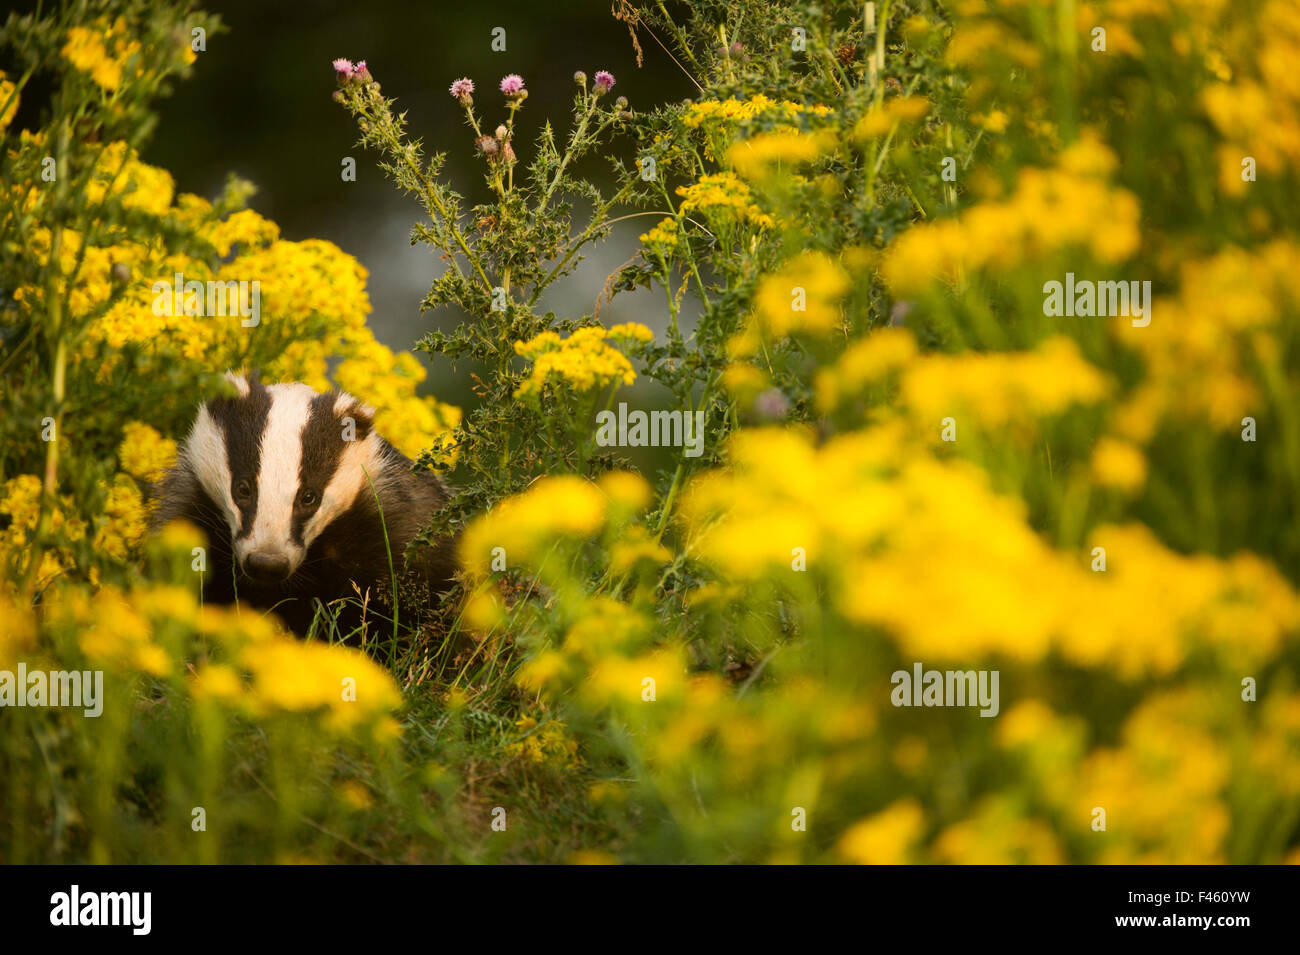 Badger (Meles meles) sub-adult badger among some ragwort, Derbyshire, England, UK, July. Highly commended in the - Stock Image